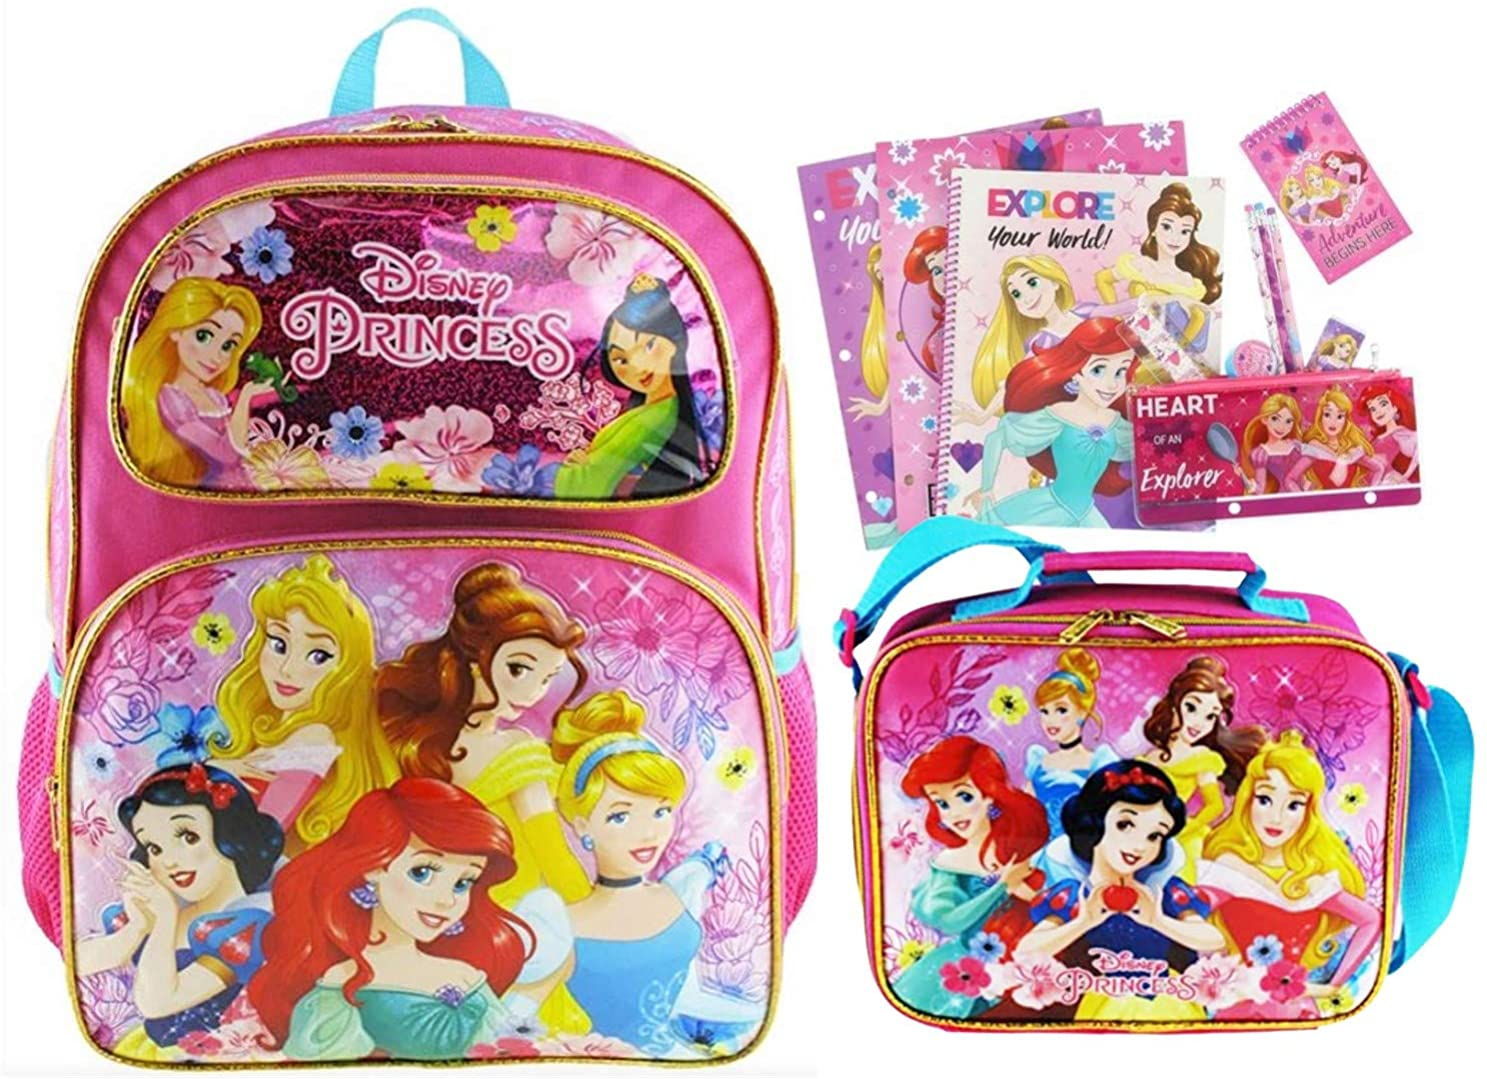 Disney Princess Deluxe 16 Inch Backpack and Lunch Box Set PLUS 11 Piece Stationery Set